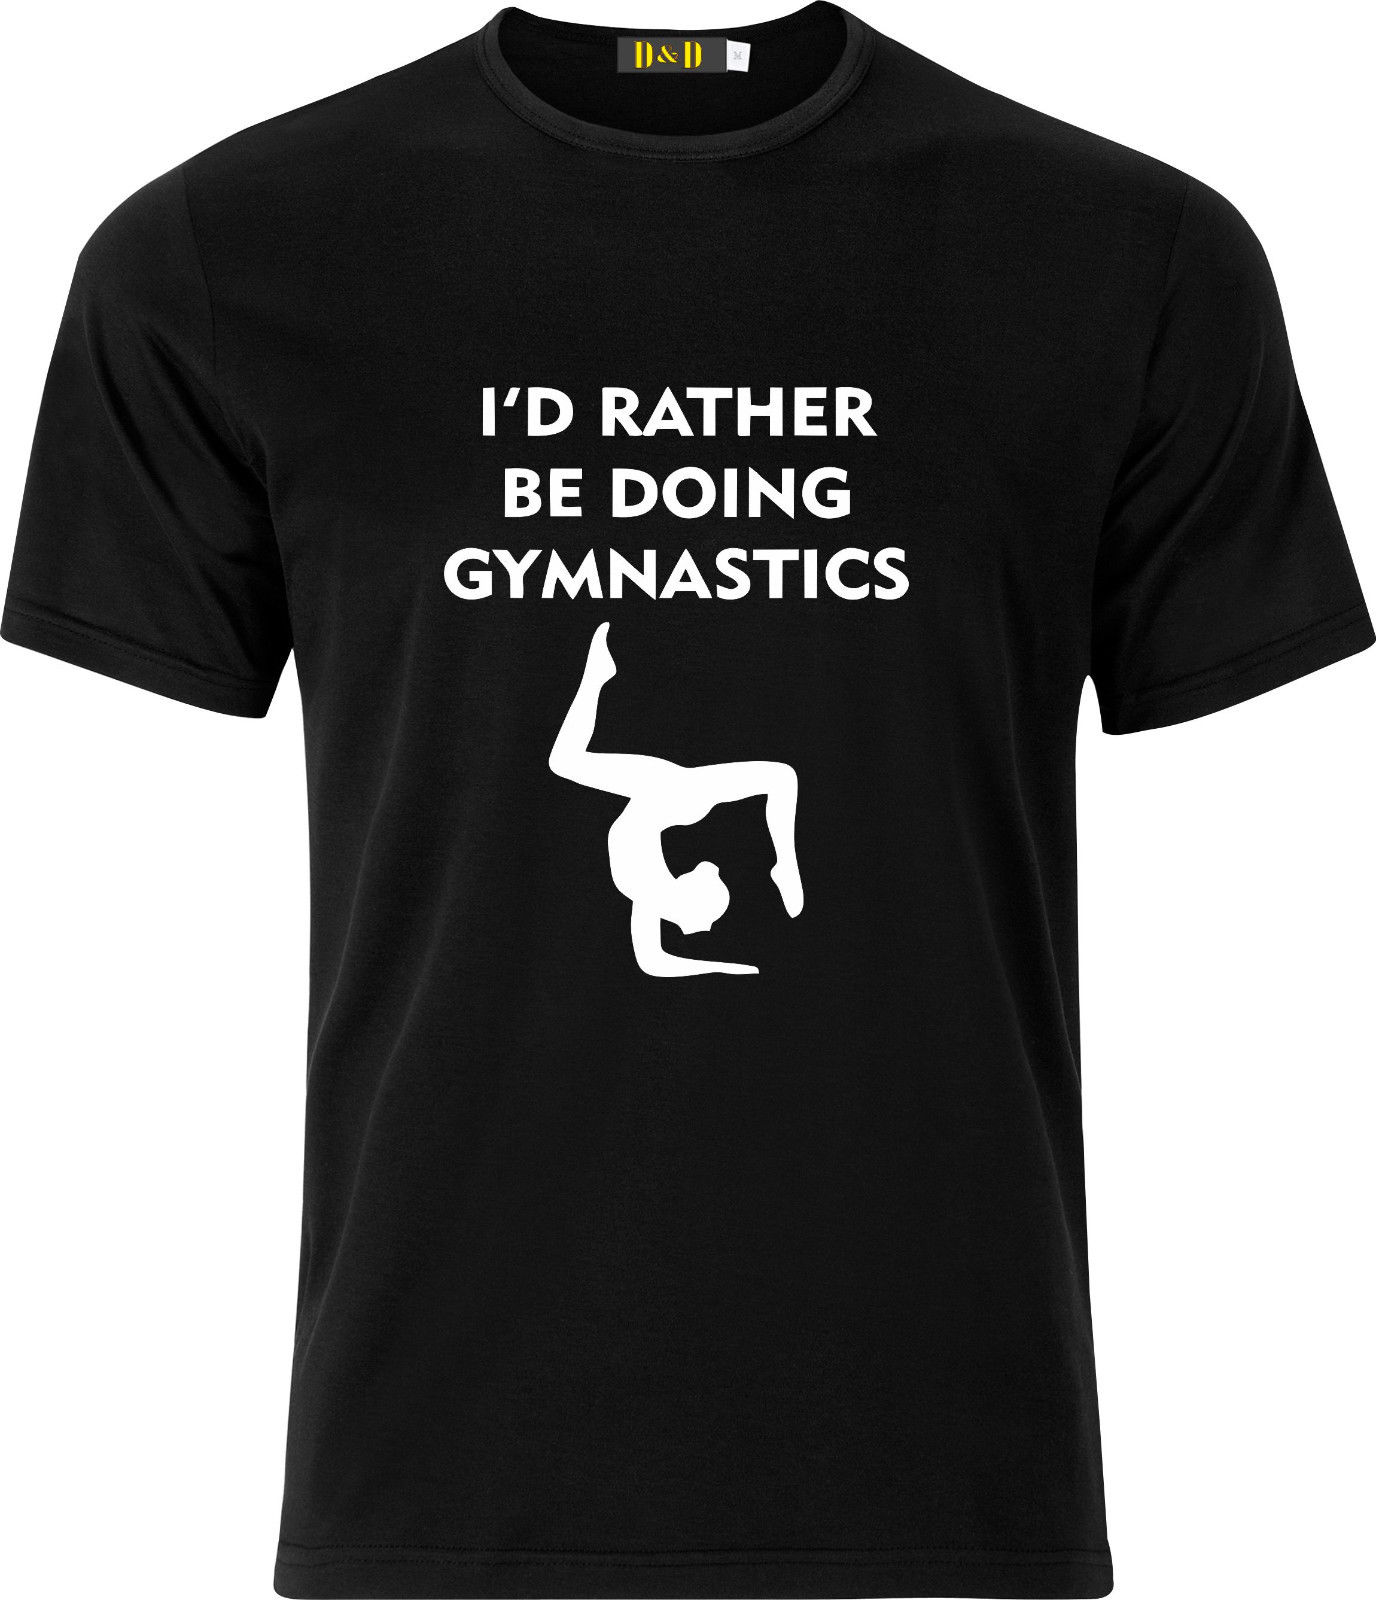 Id Rather Be Doing Gymnastics FUNNY HUMOR GIFT COTTON T SHIRT Mens Tops Cool O Neck T-Shirt Top Tee Cartoon Character